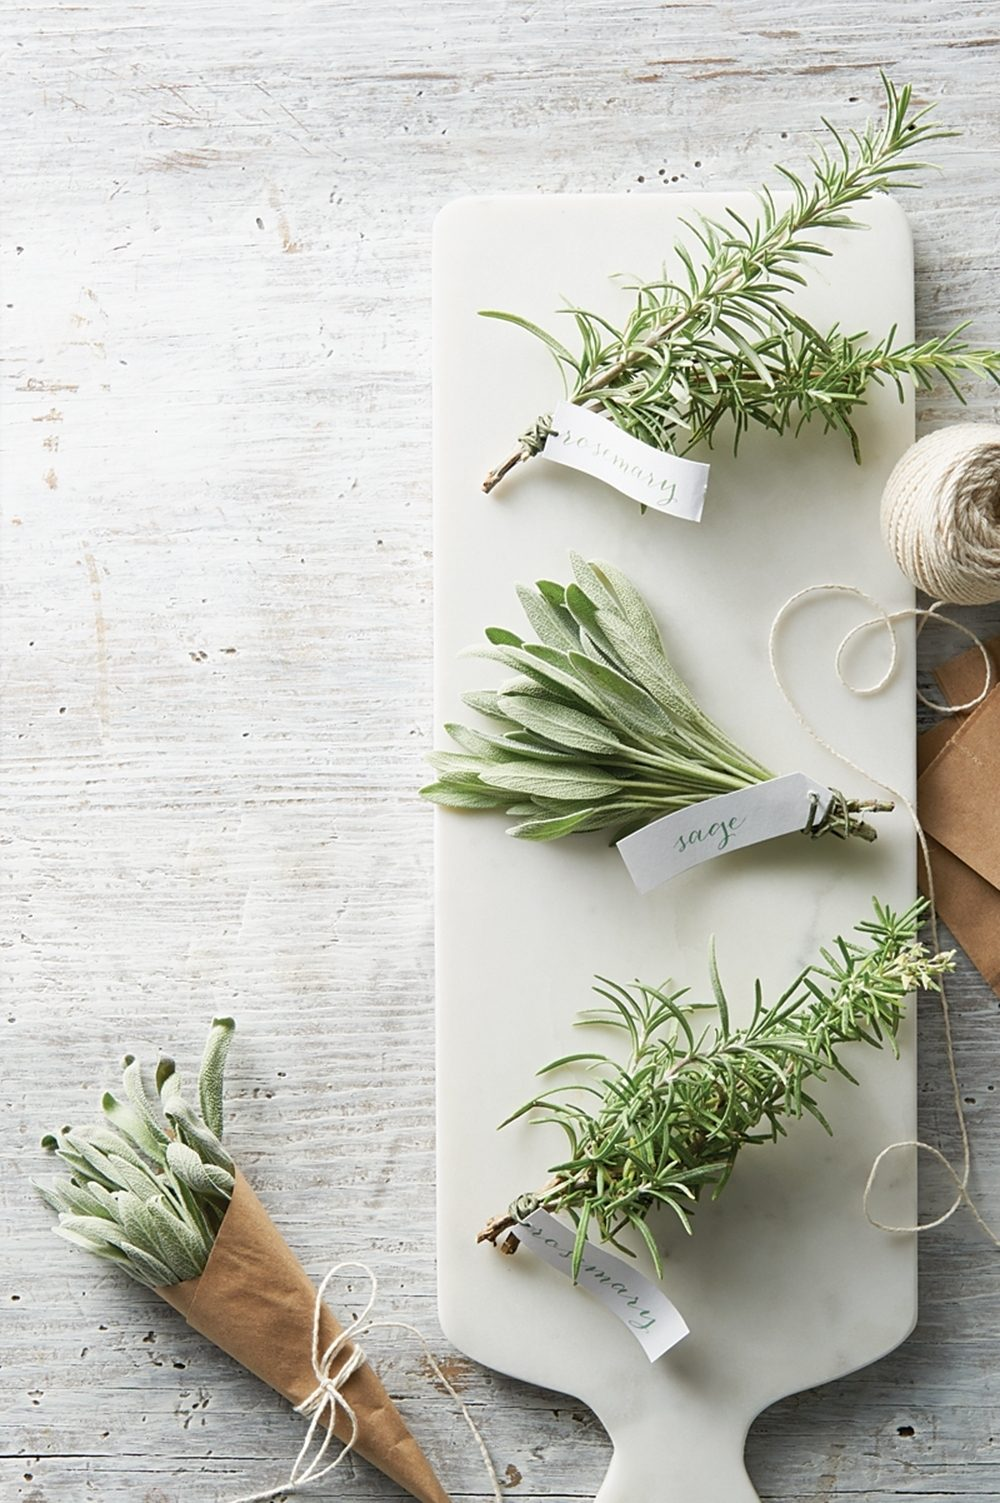 Rosemary and sage herbs